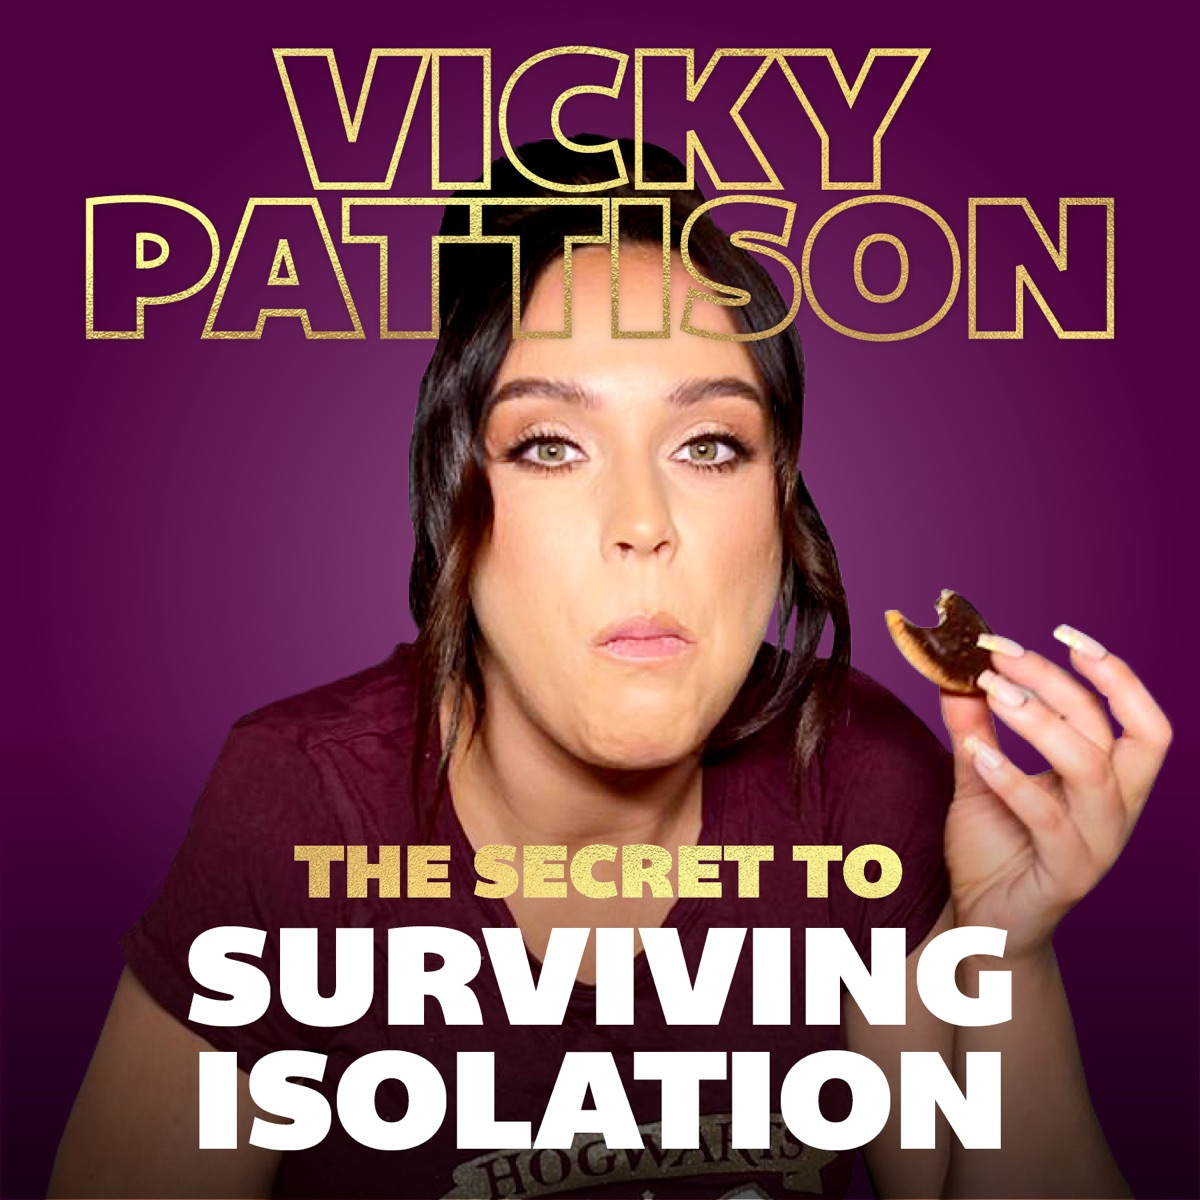 Vicky Pattison: The Secret To